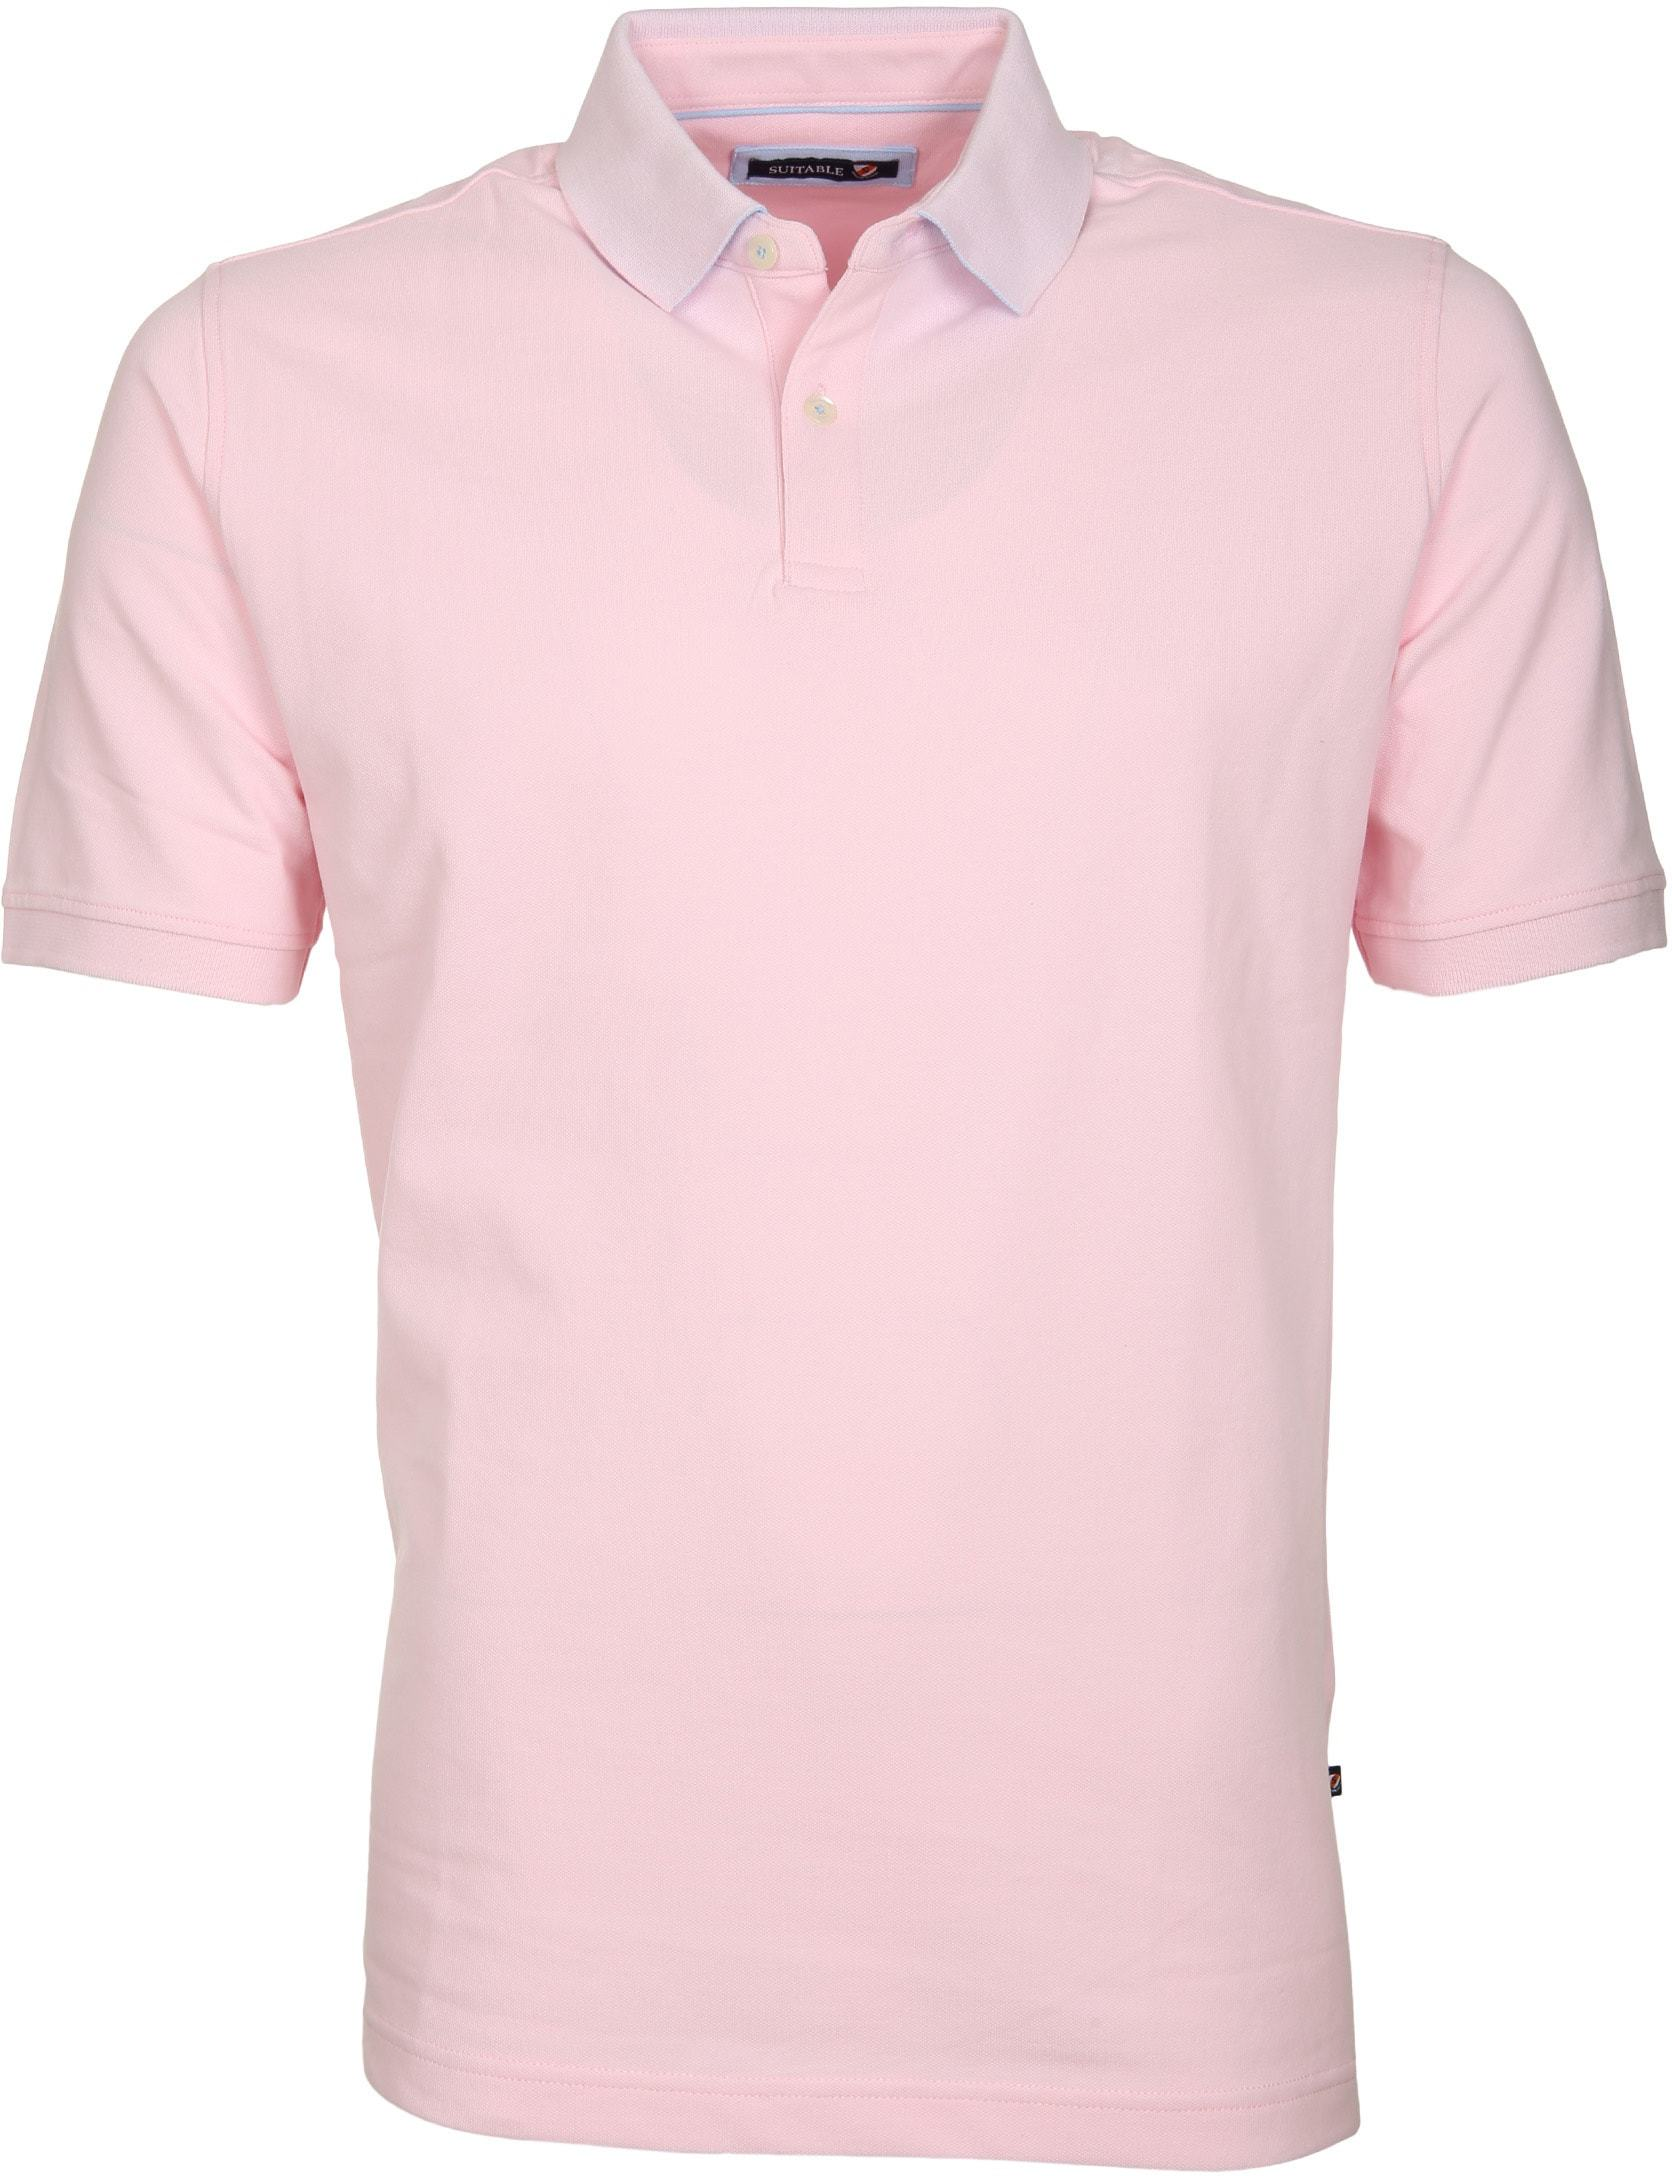 Suitable Poloshirt Basic Rosa foto 0